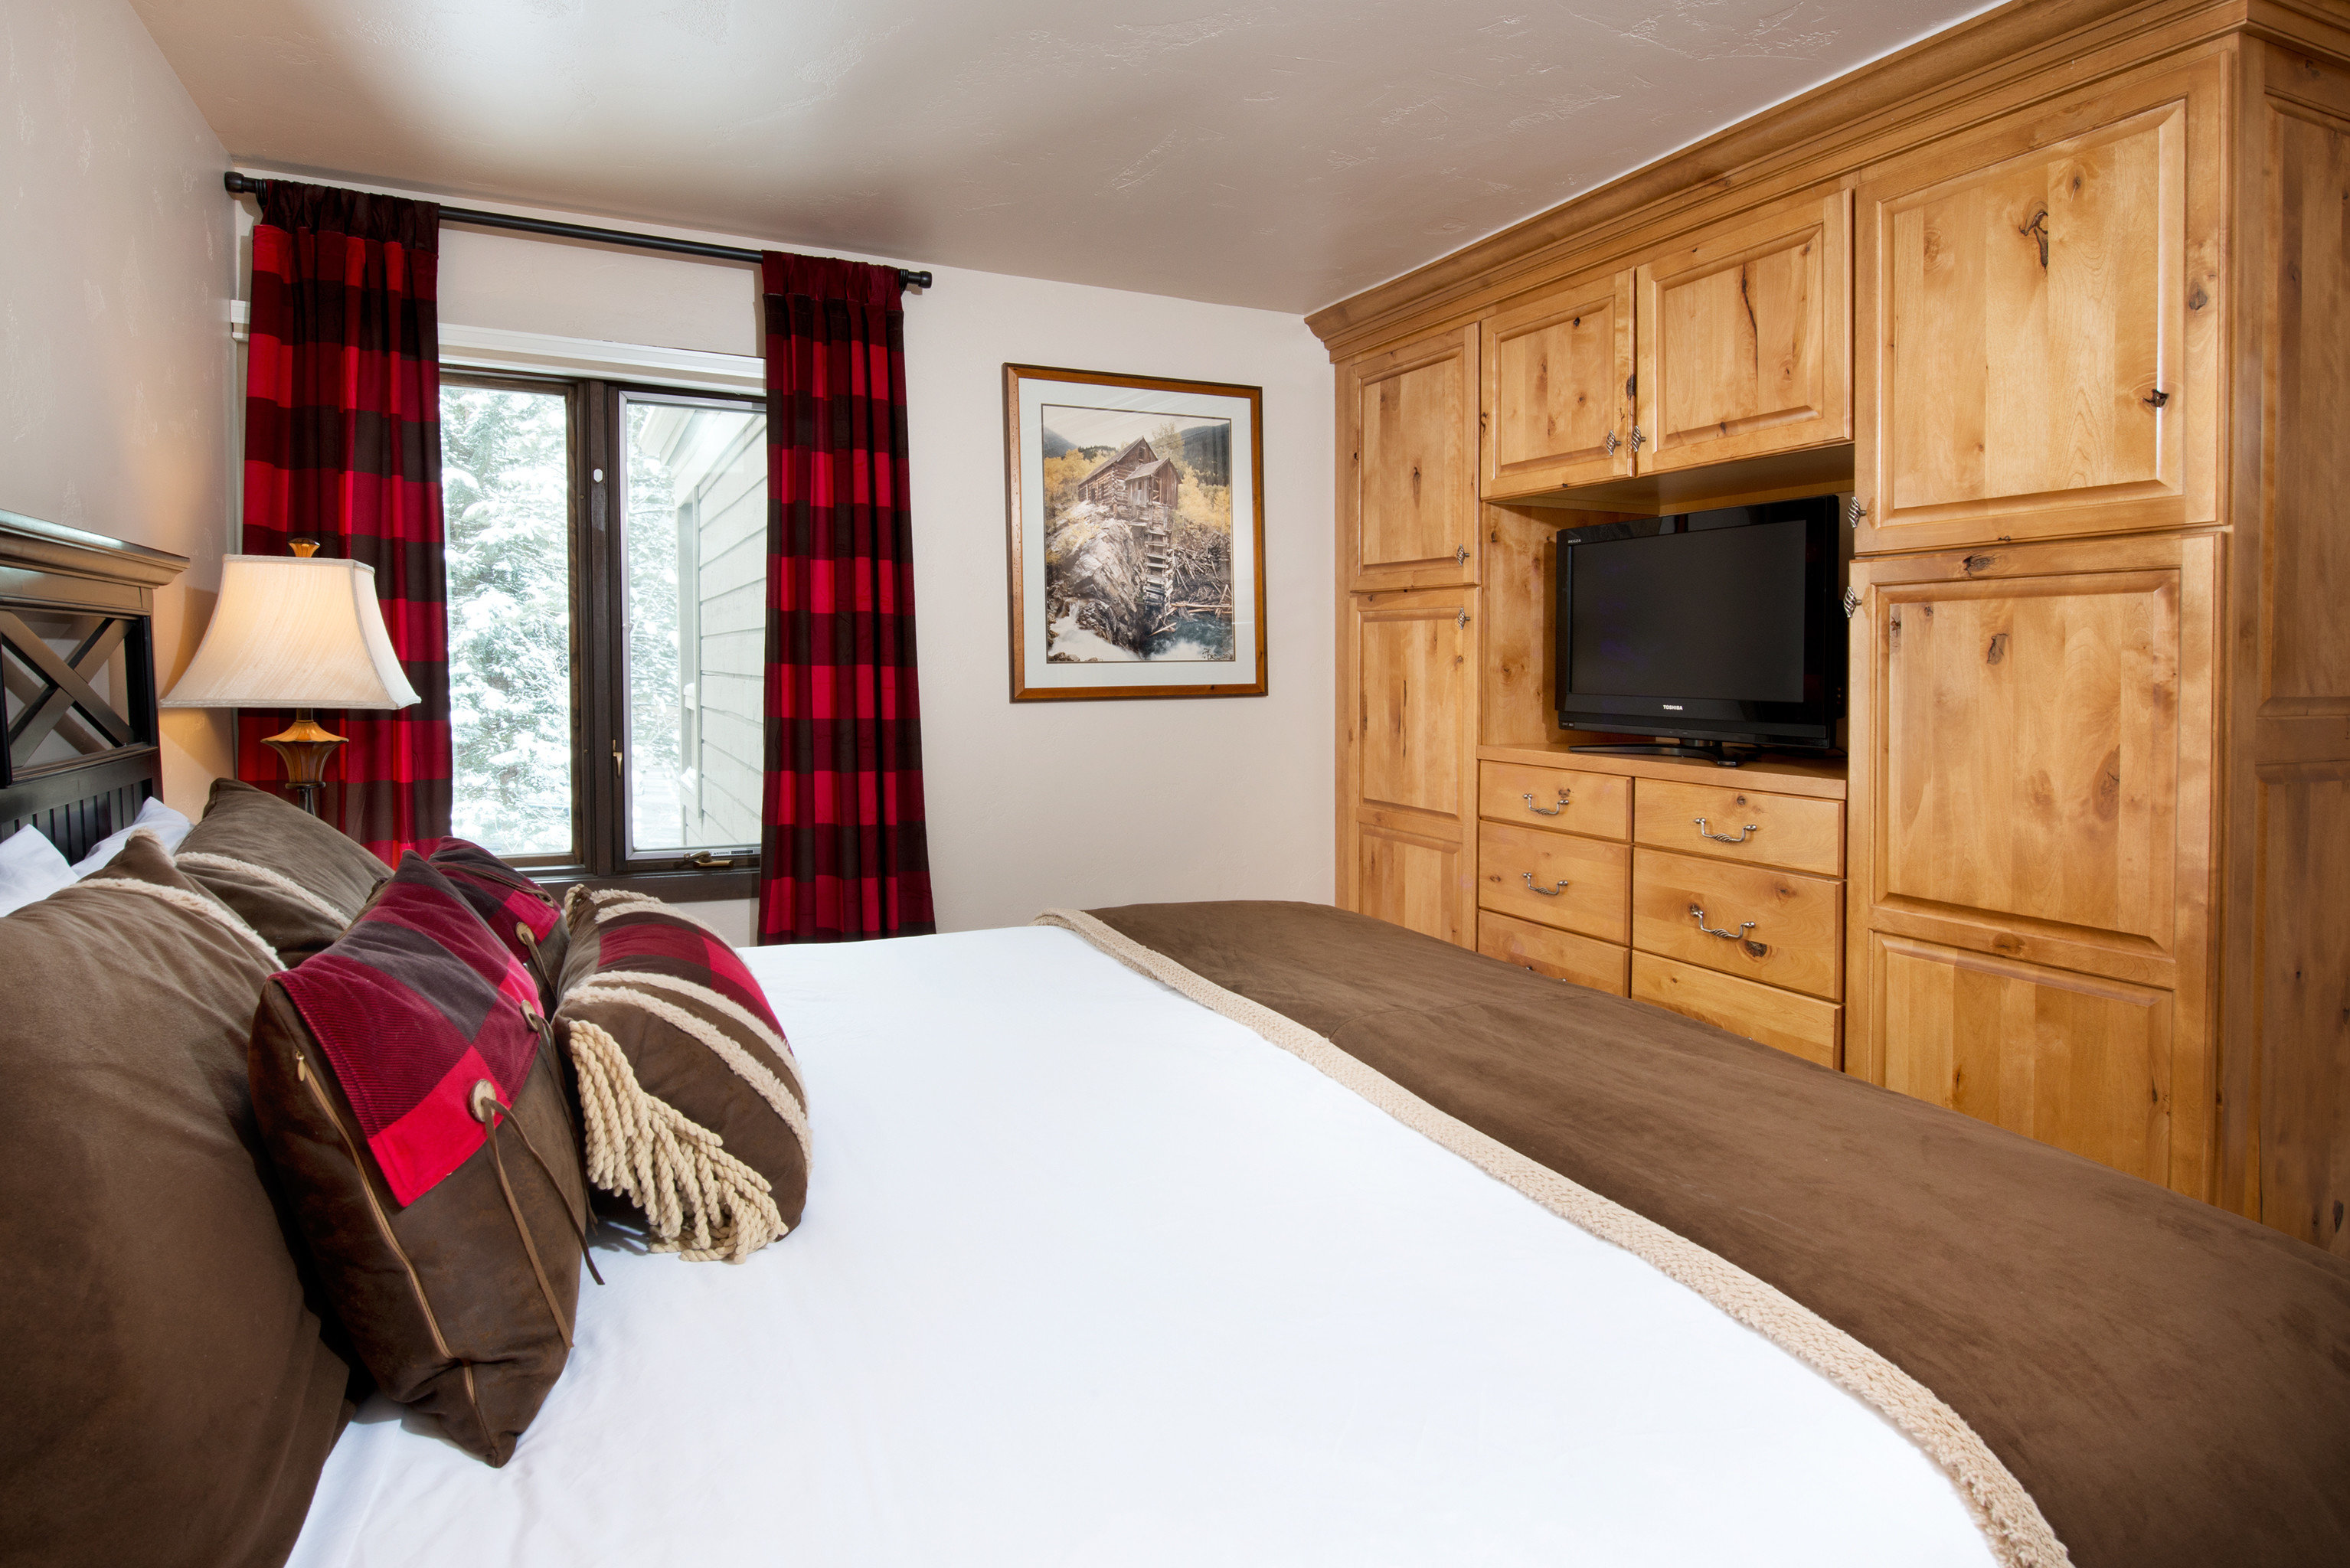 Bedroom Hotels Rustic Scenic views Trip Ideas property home house cottage living room